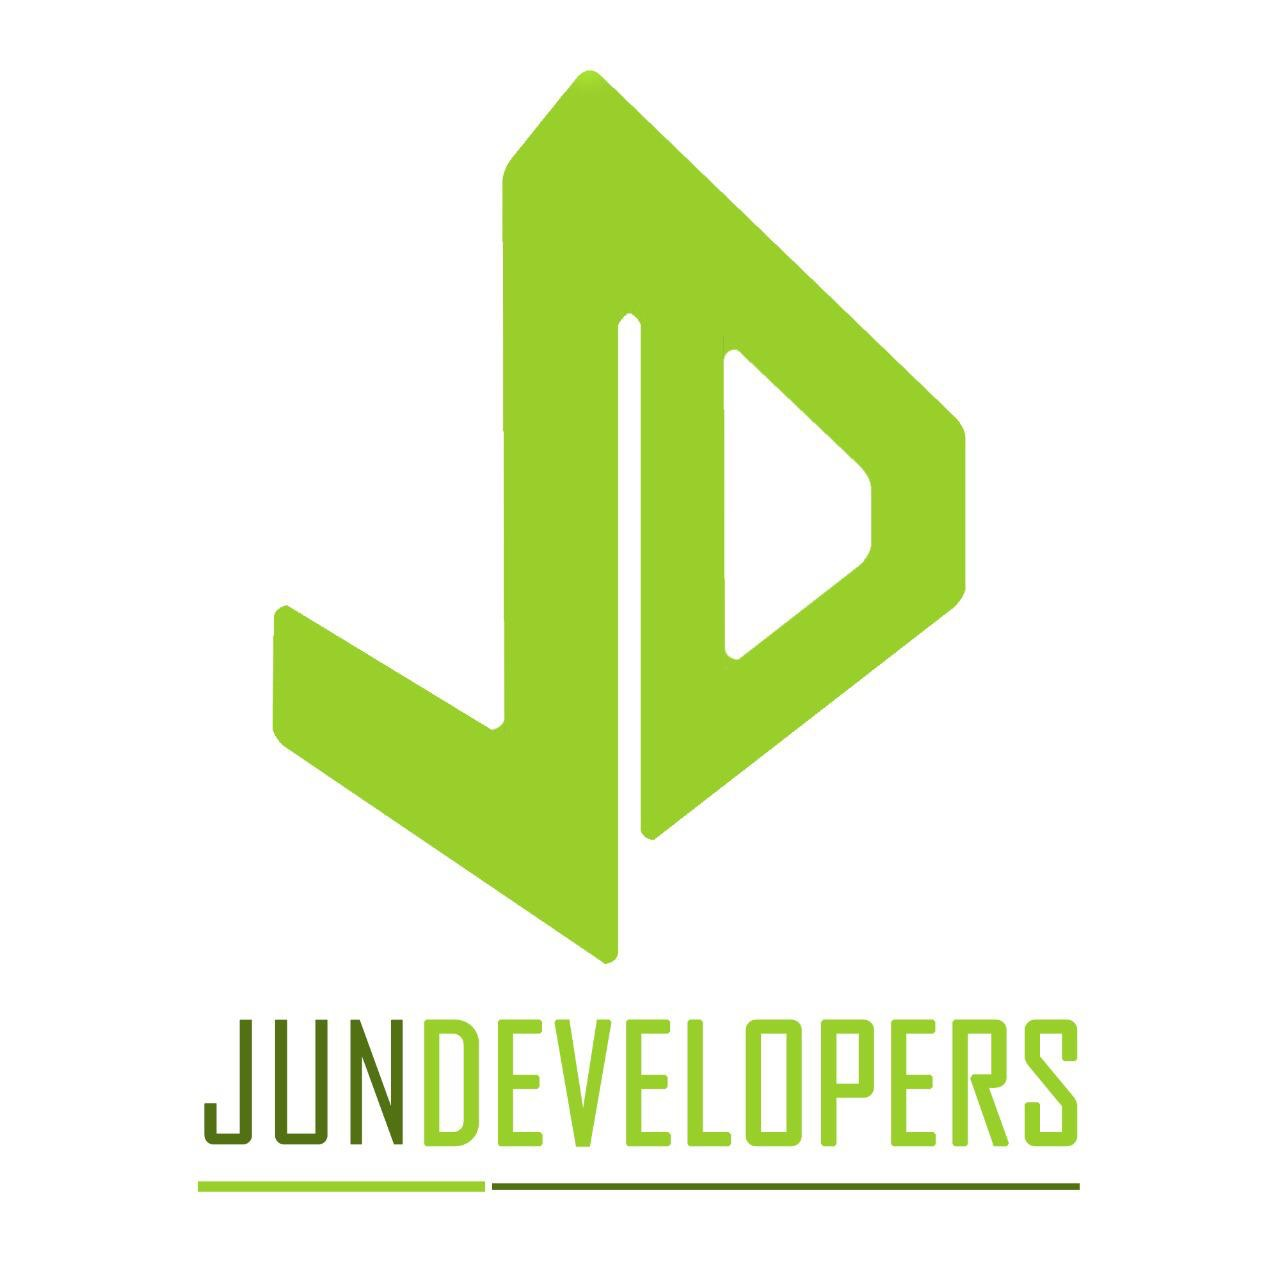 JunDevelopers